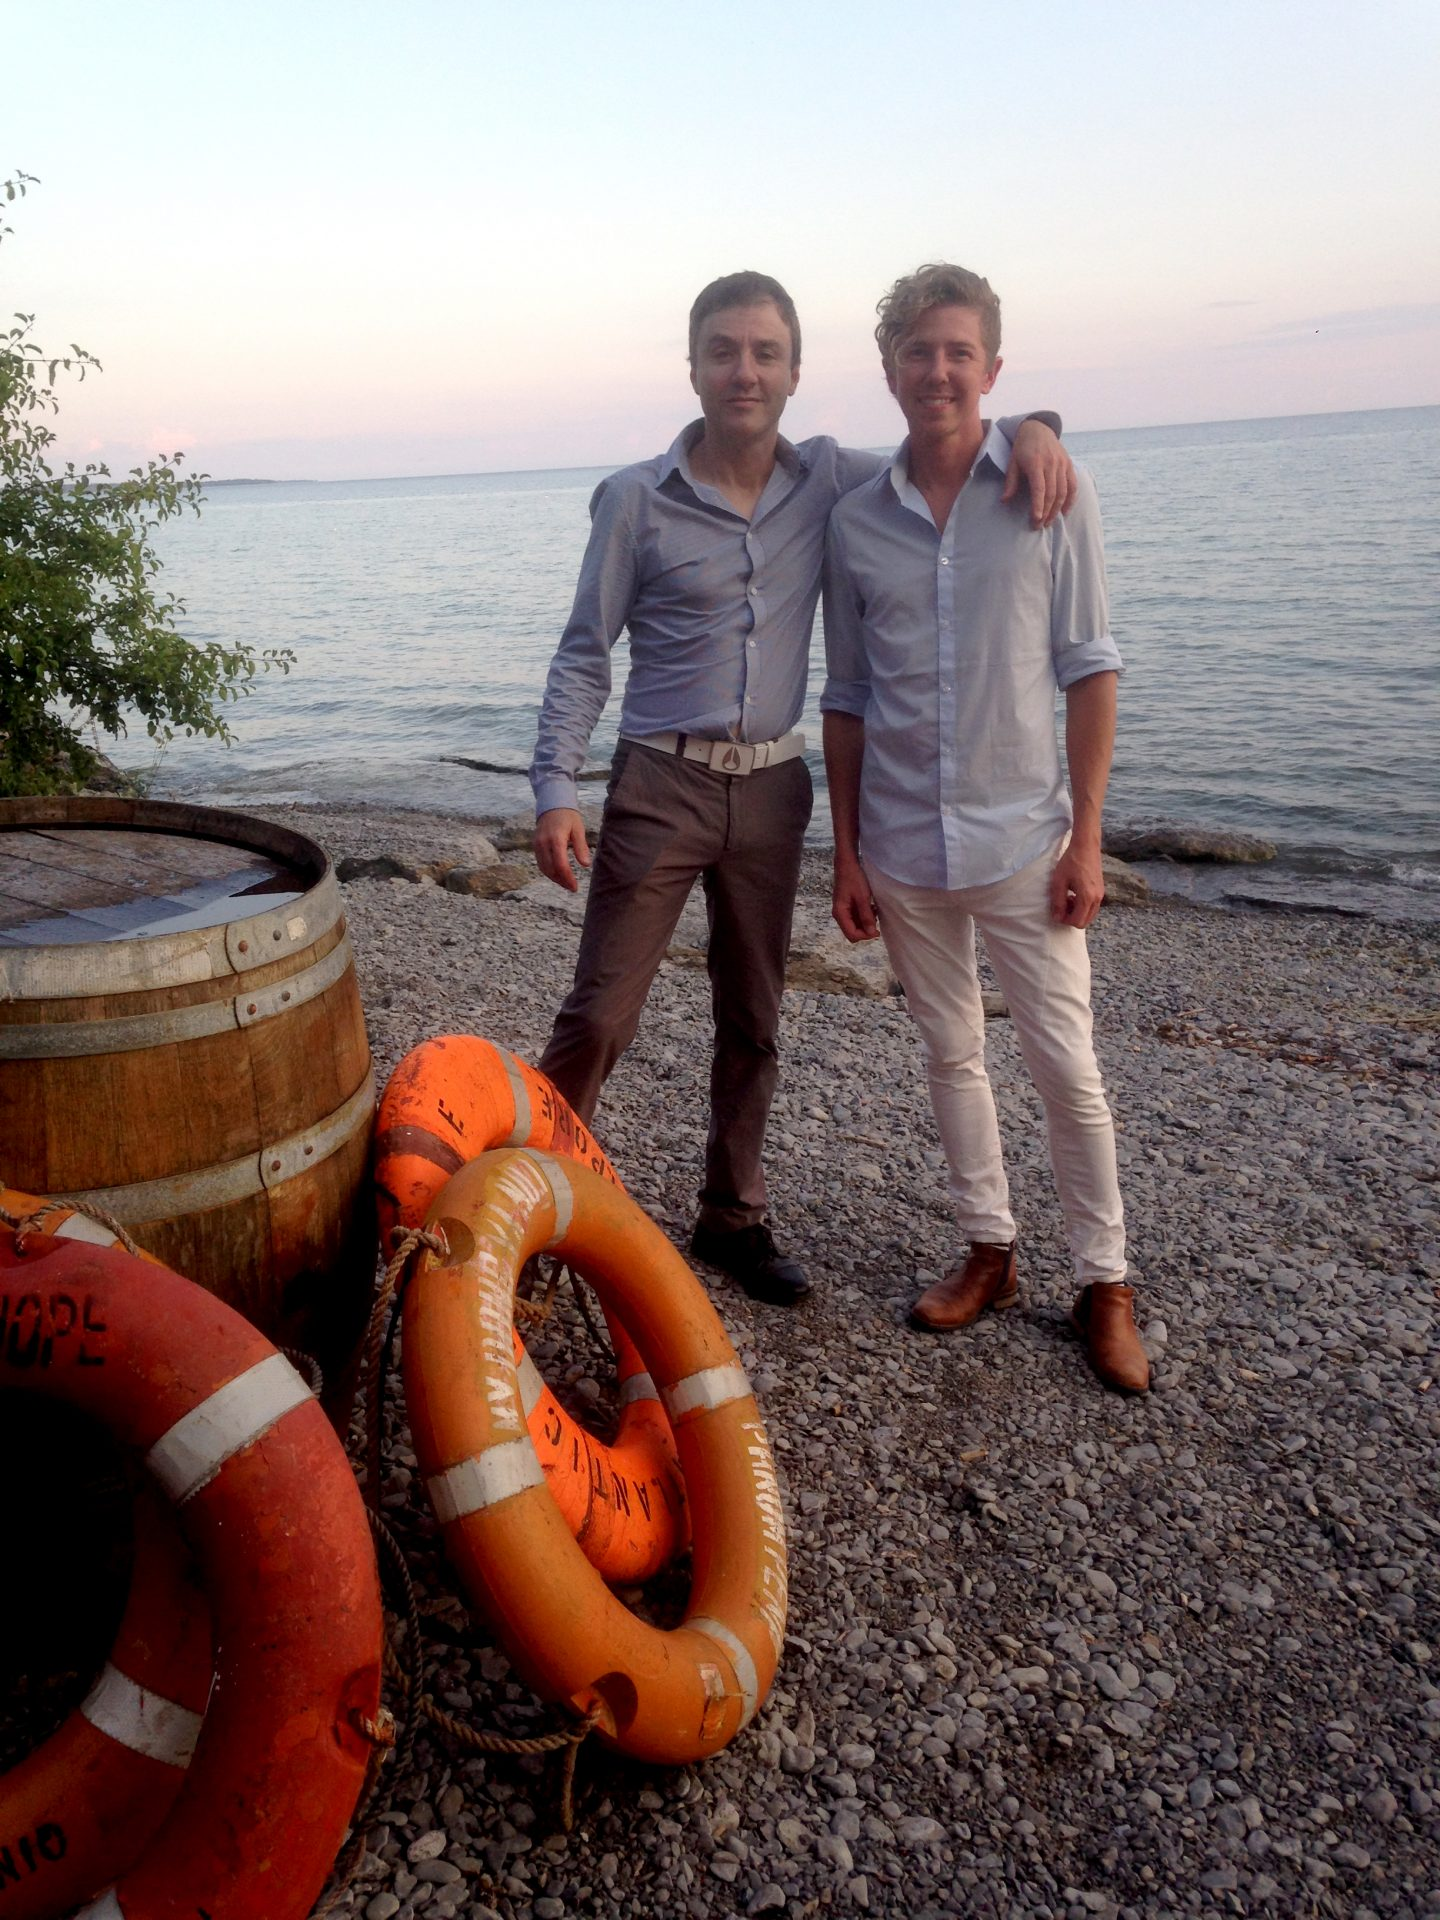 Winemaker Bruno Francois and partner Jens Korberg take a break from making some great wine (and cider) at The Old Third, Prince Edward County.